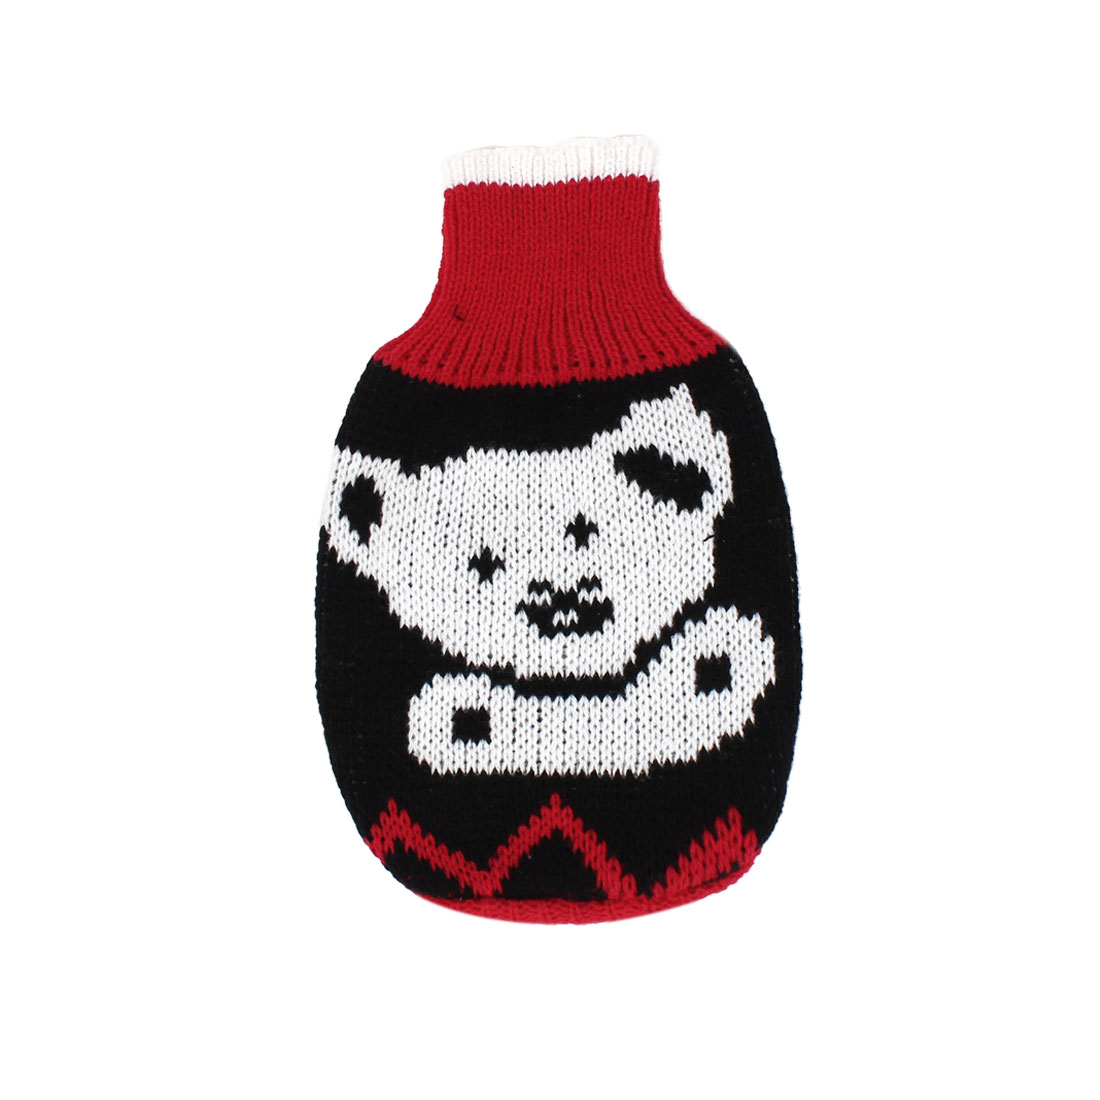 Pet Dog Puppy Ribbed Cuff Knitwear Turtleneck Apparel Sweater Red Black Whtie Size XXS